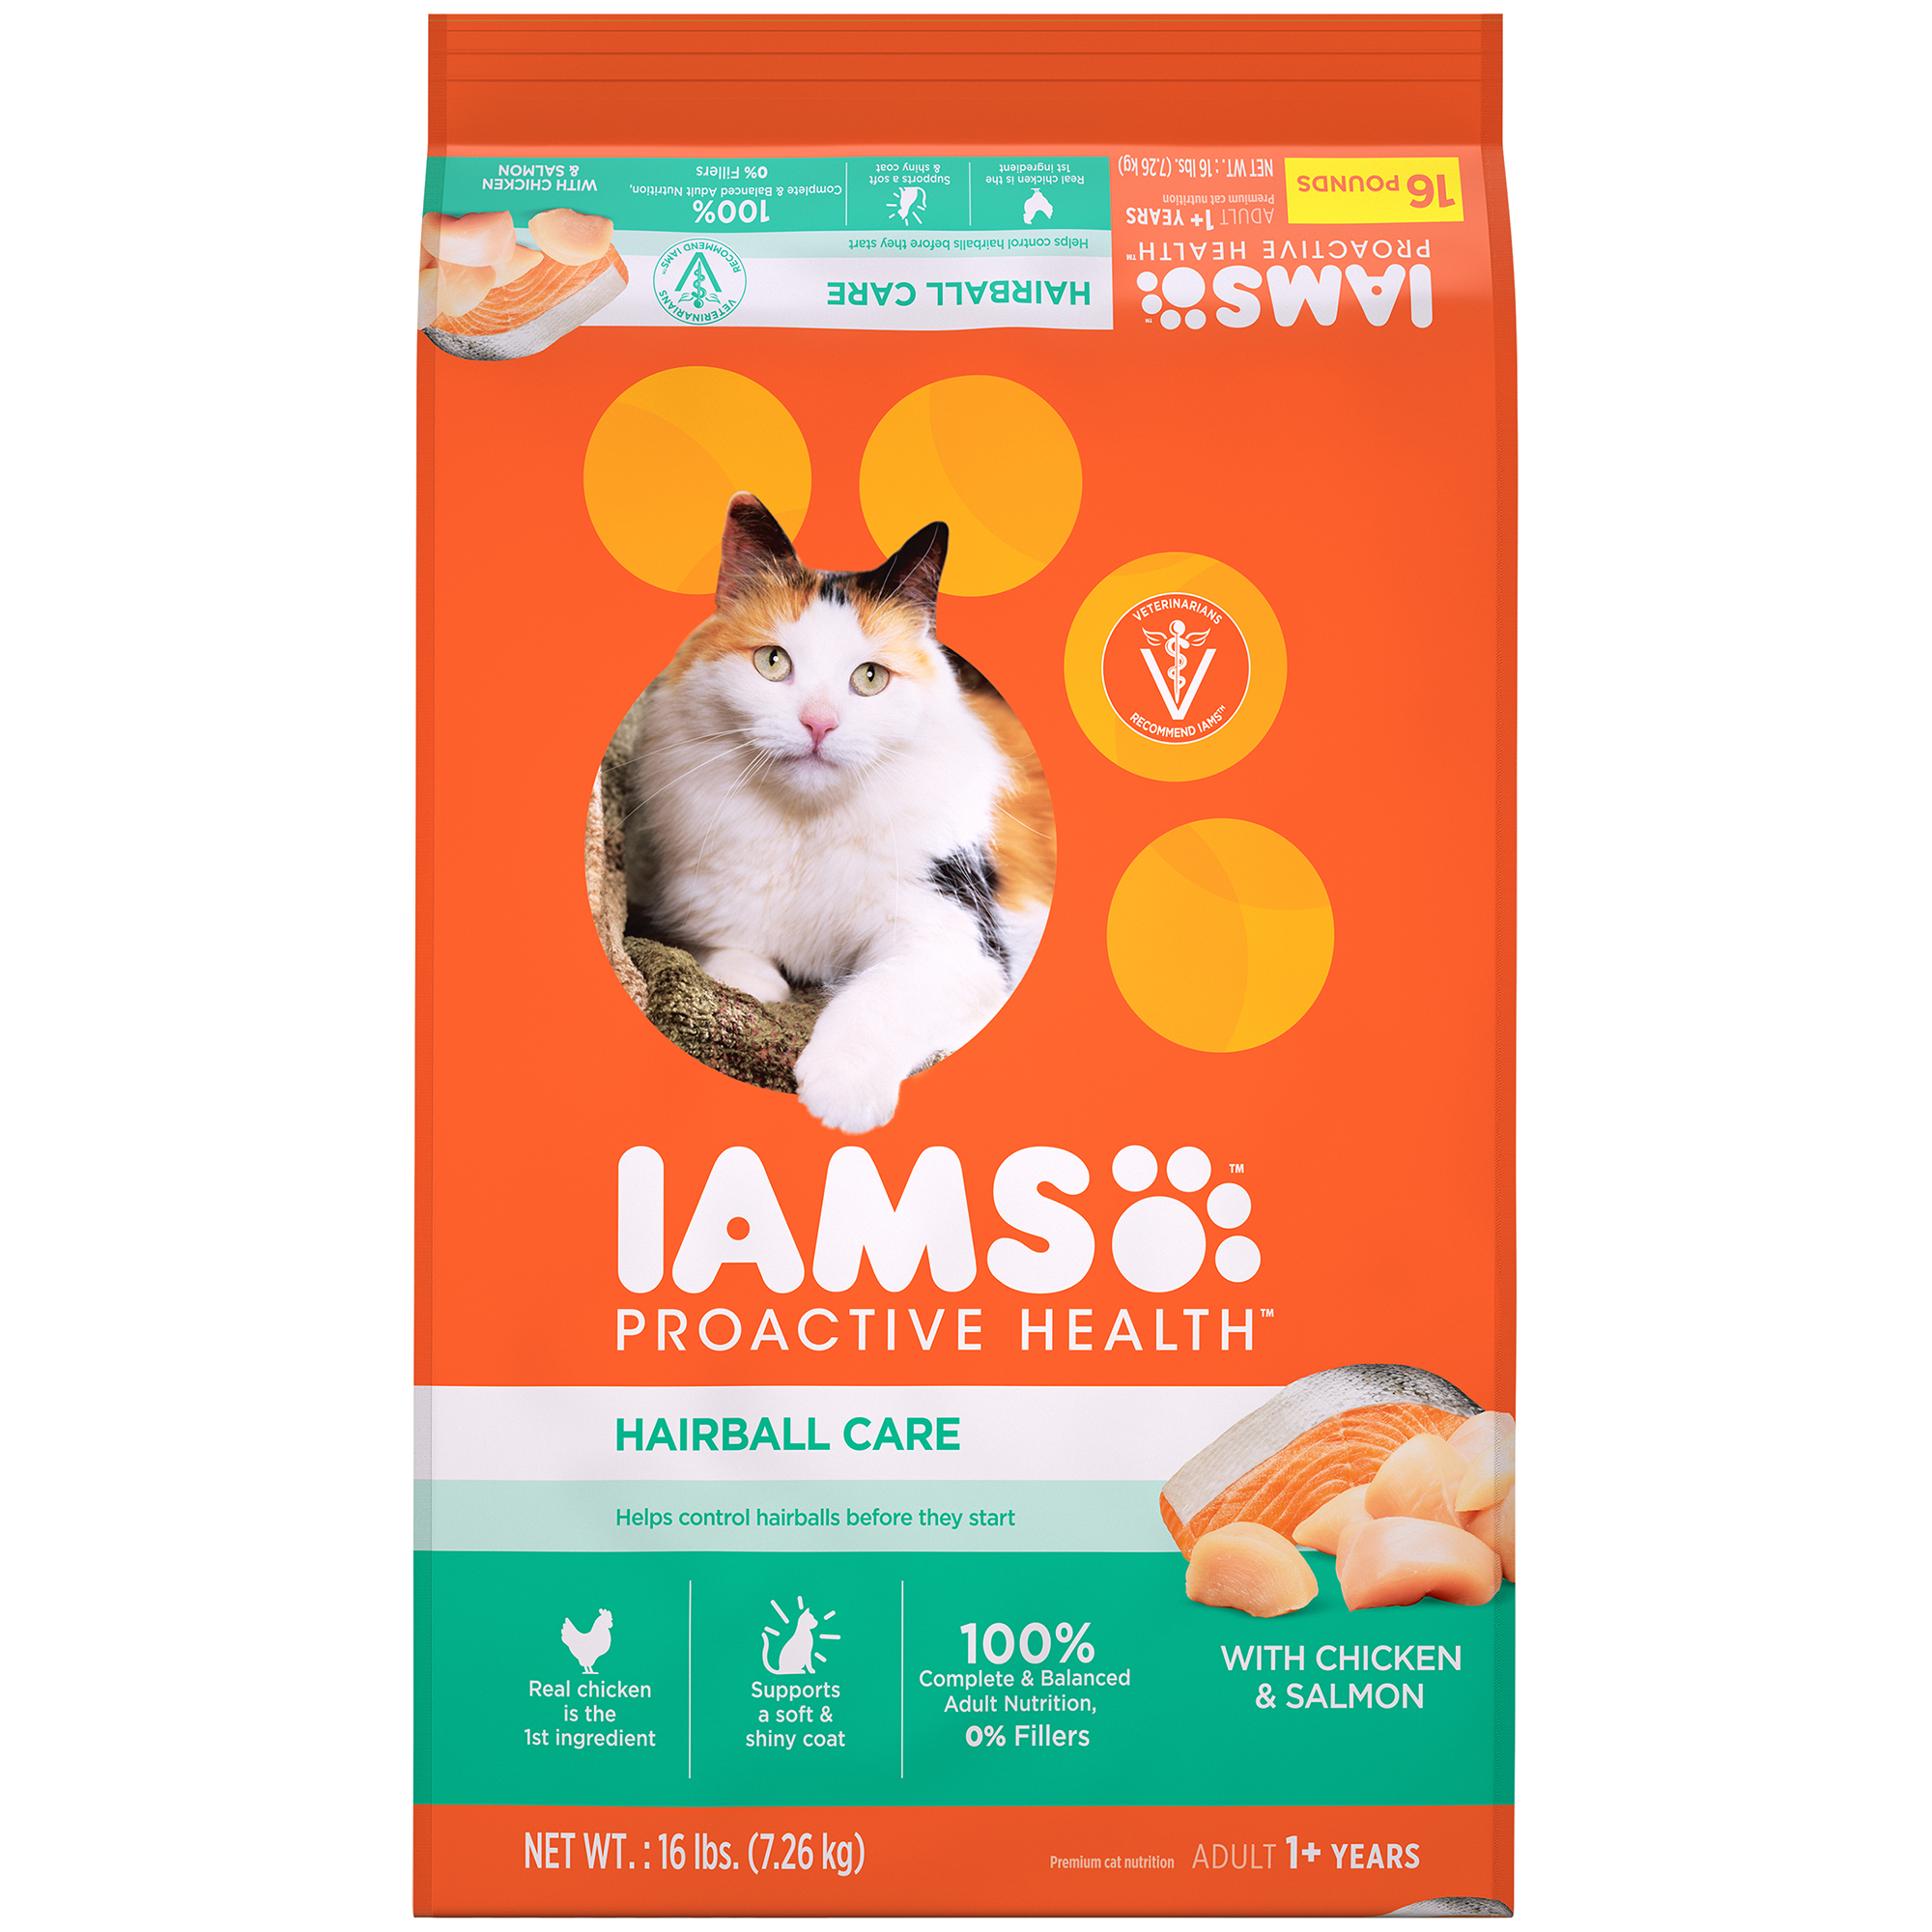 Iams Proactive Health Adult Hairball Care with Chicken & Salmon Dry Cat Food, 16 lb